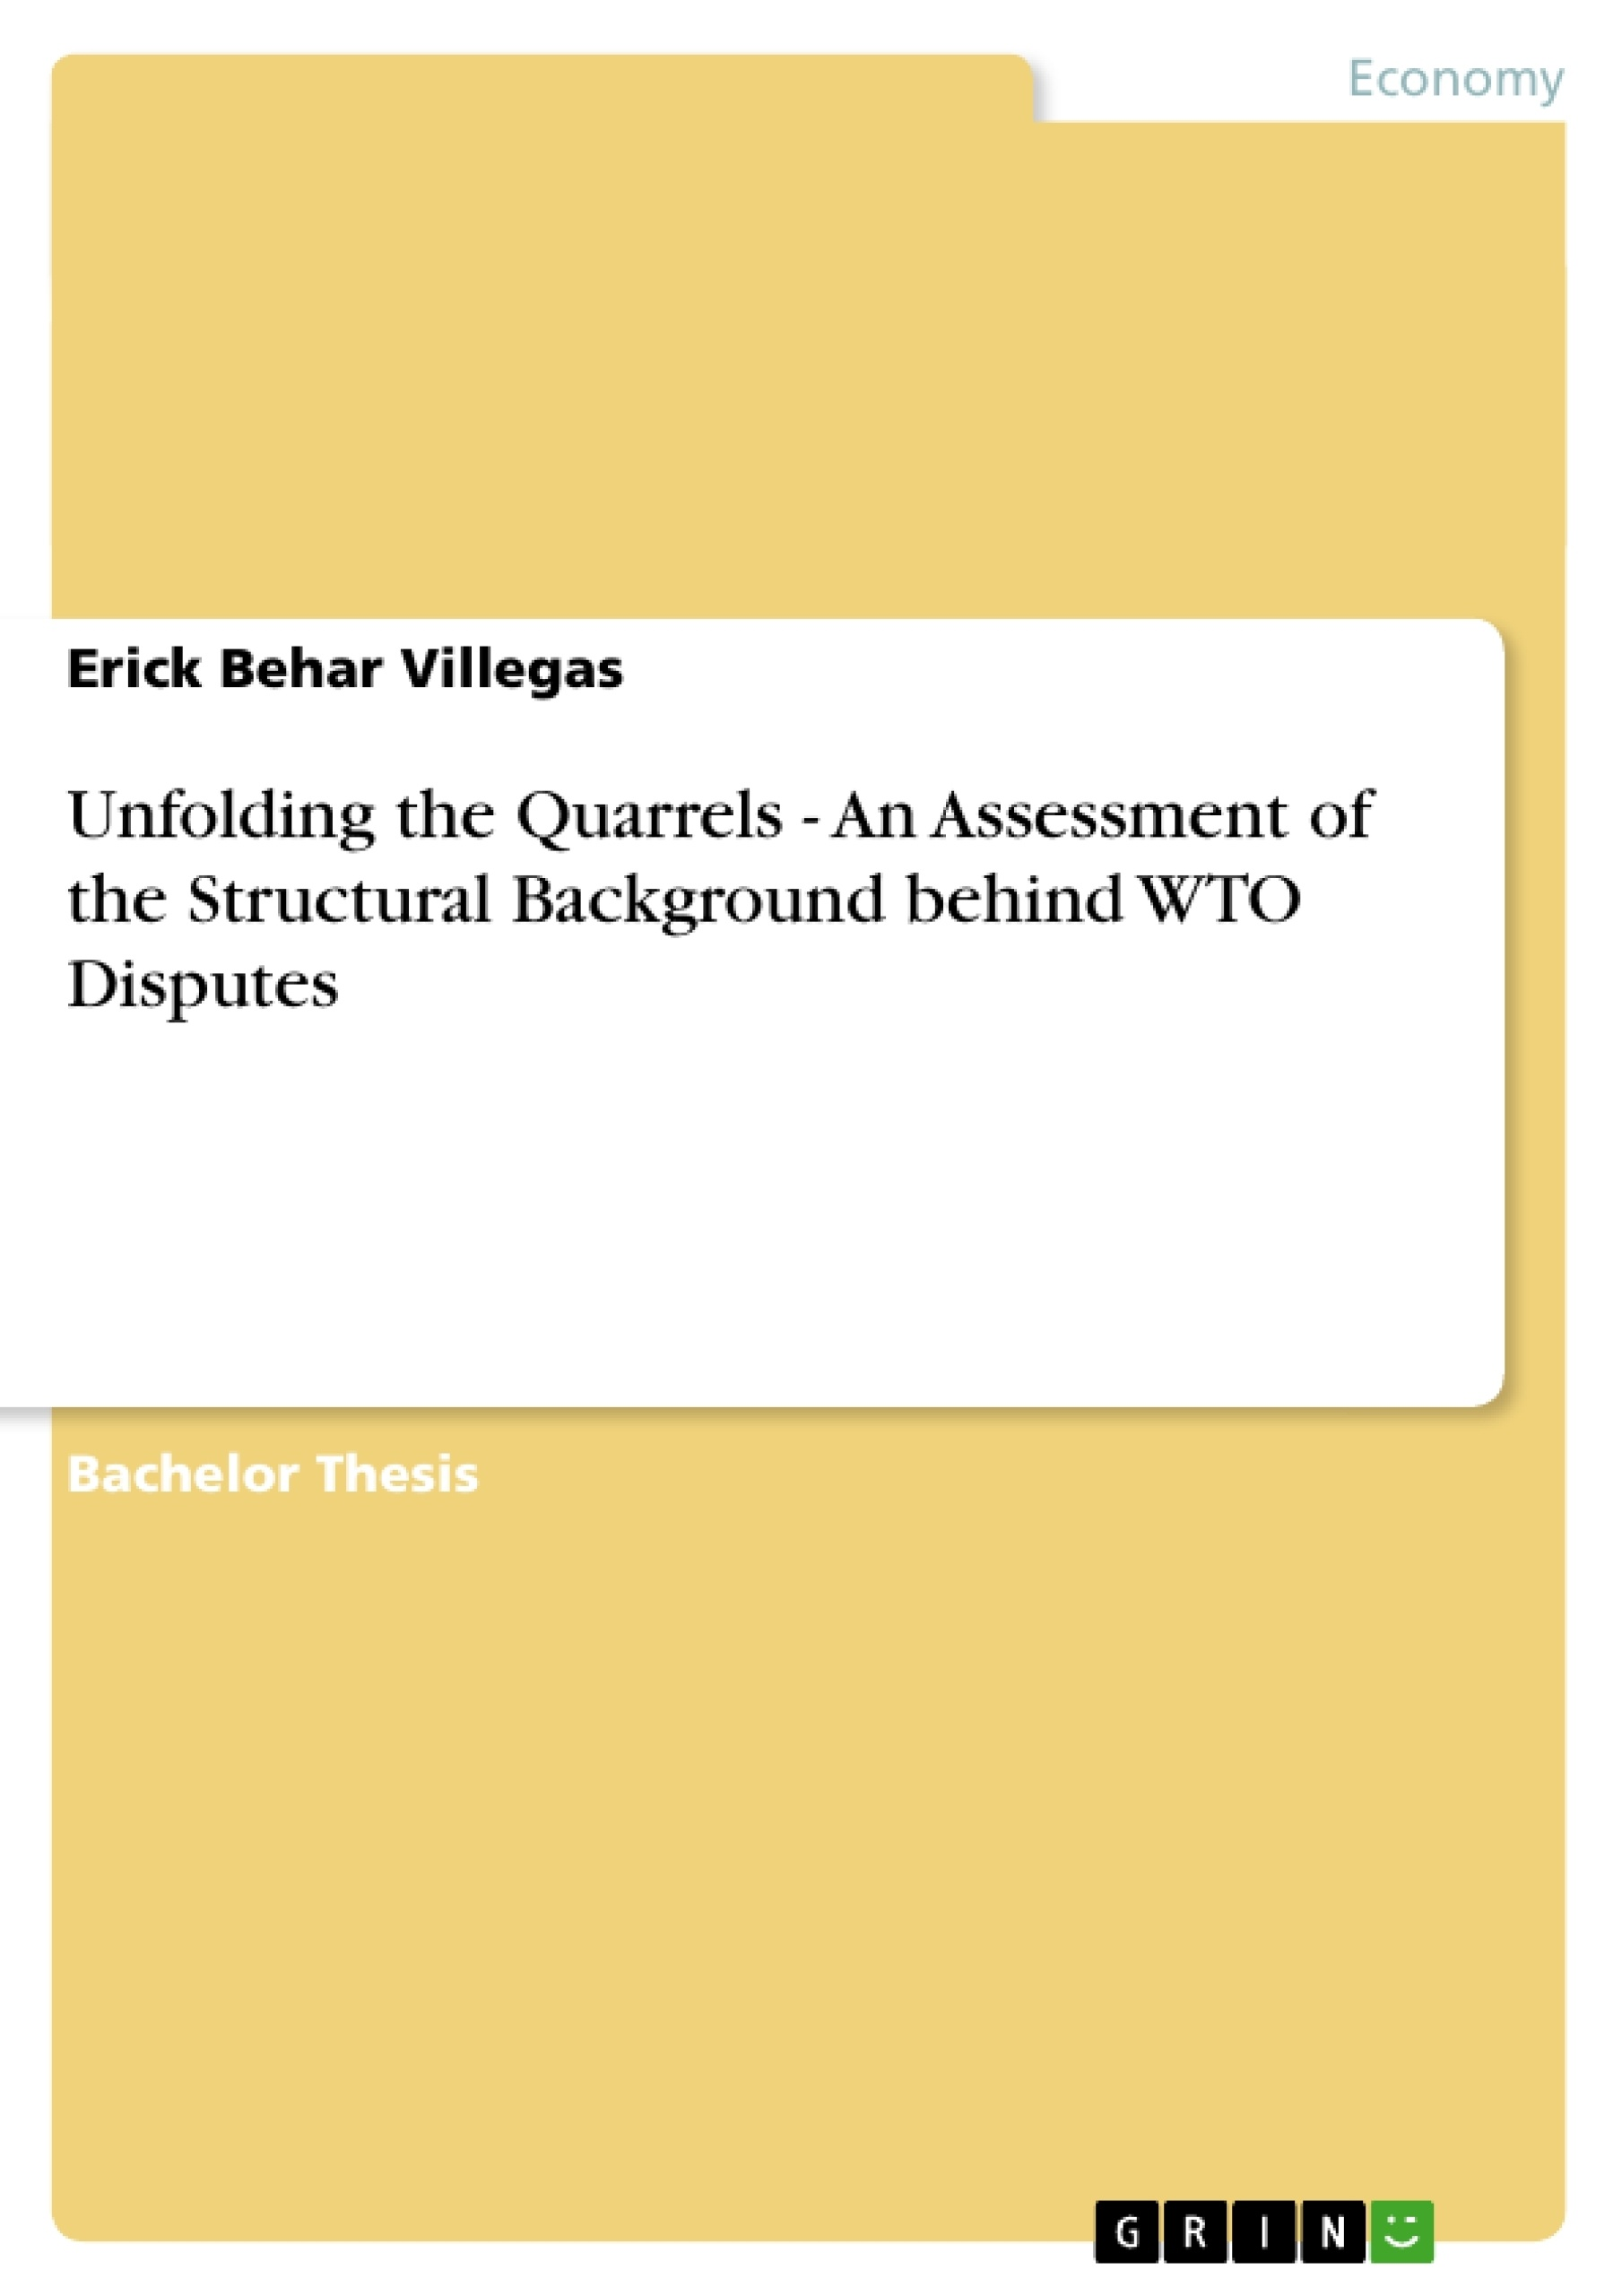 Title: Unfolding the Quarrels - An Assessment of the Structural Background behind WTO Disputes